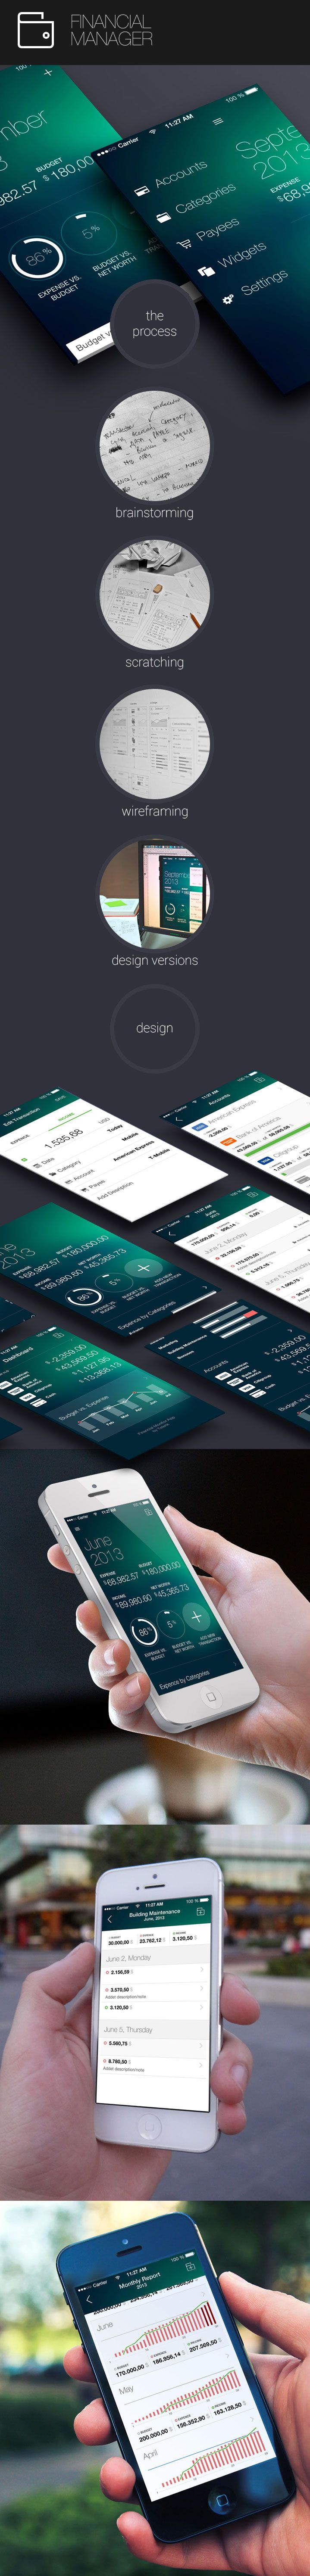 Financial Manager | Mobile App